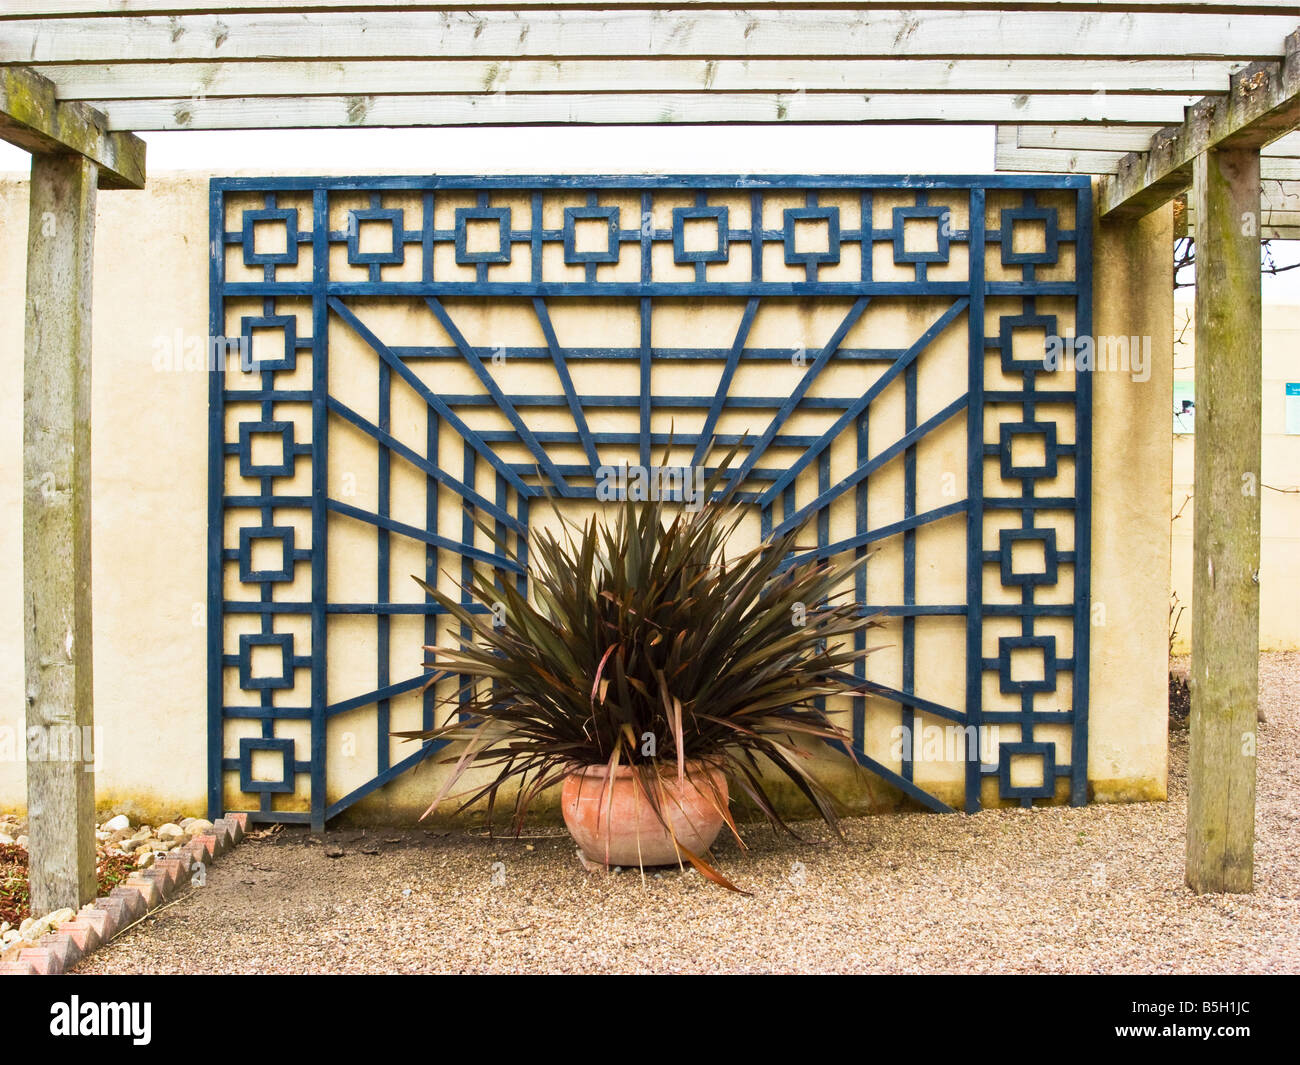 Garden Wall Trellis Designs